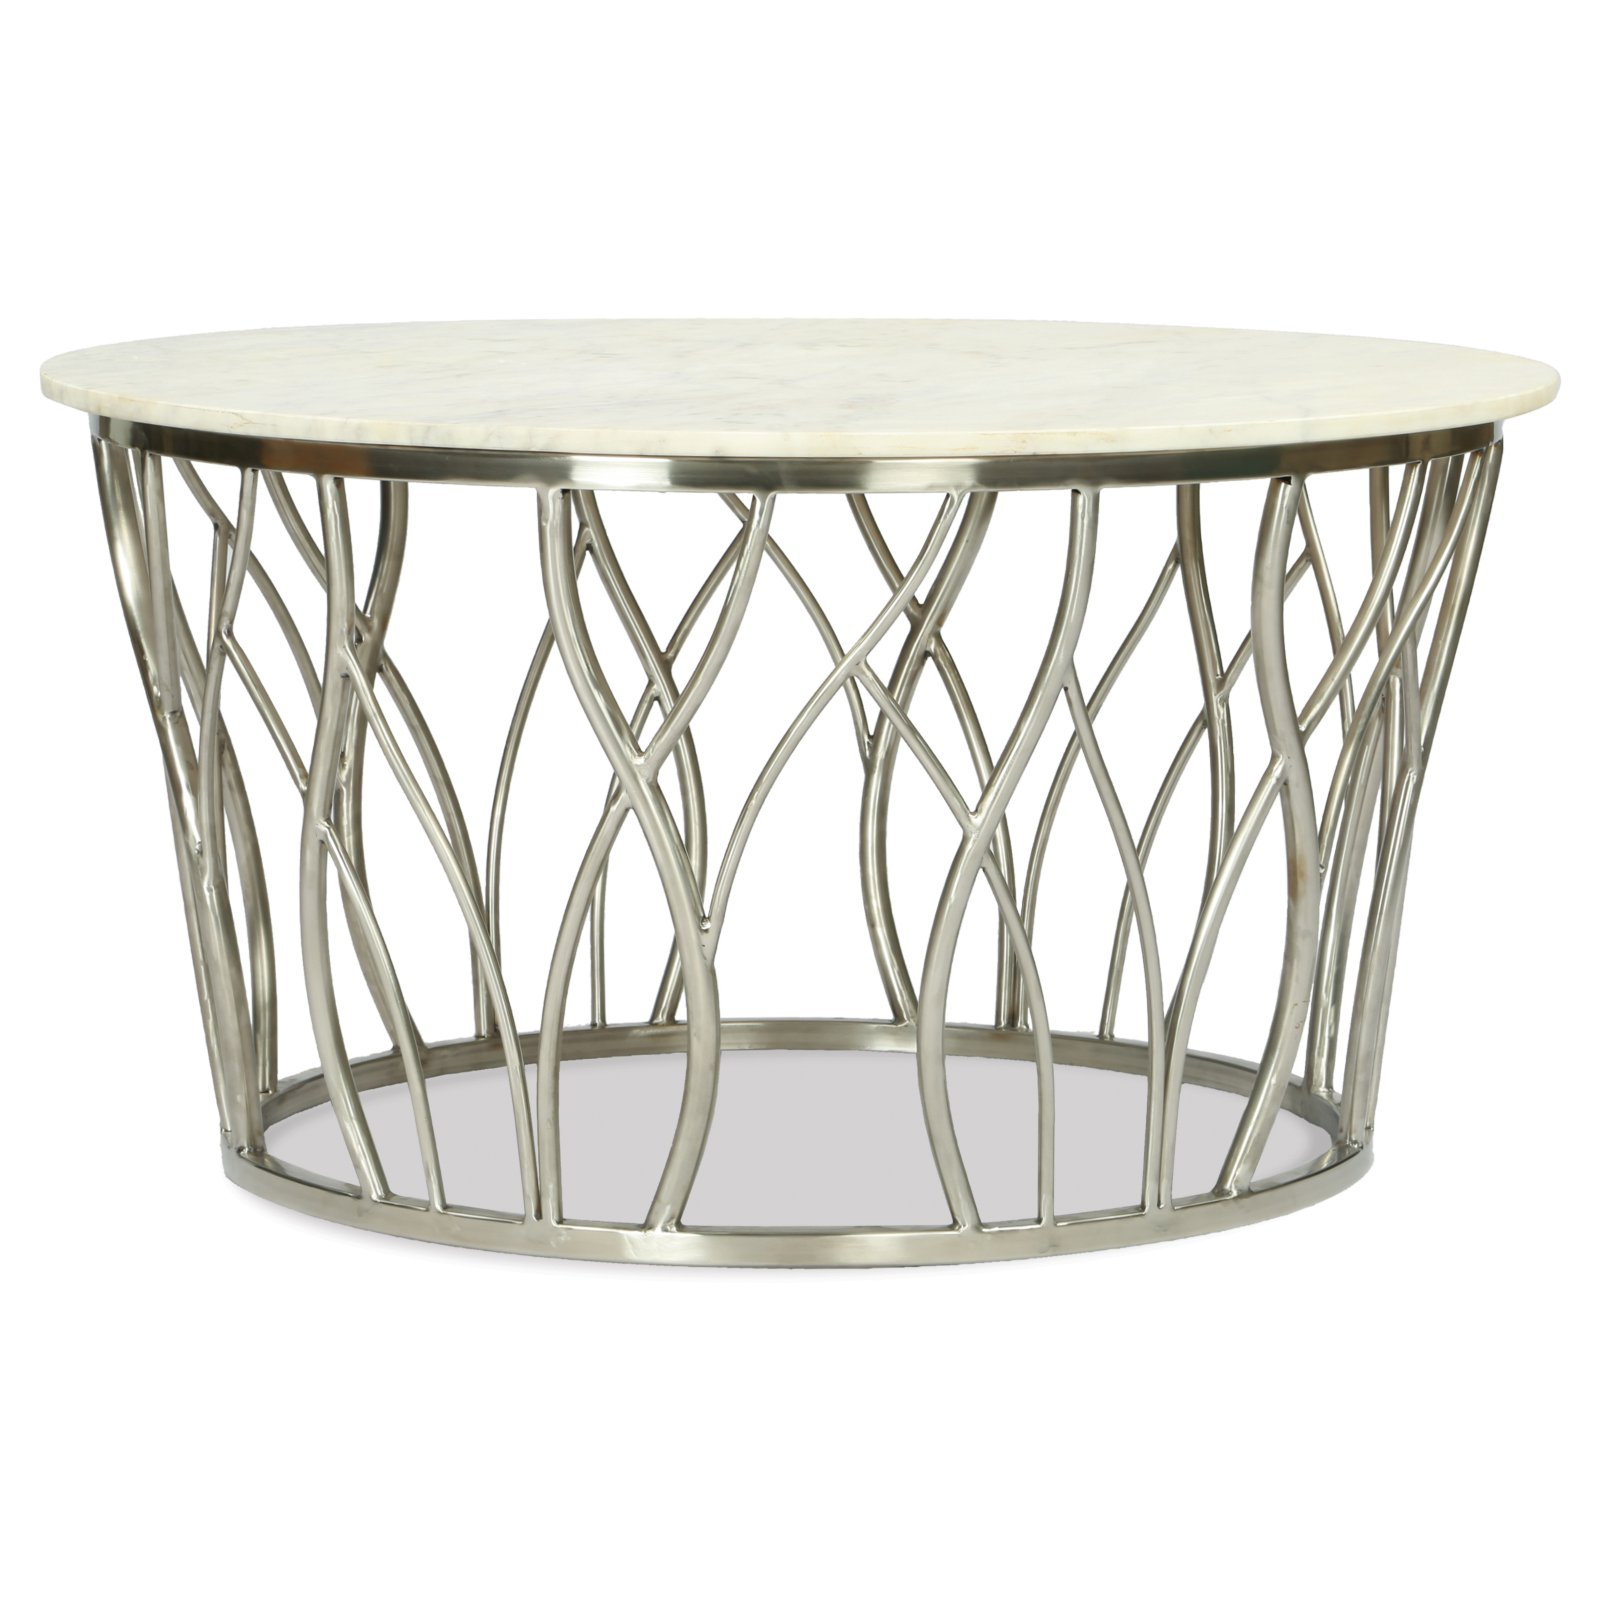 Riverside Furniture Ulysses Round Coffee Table